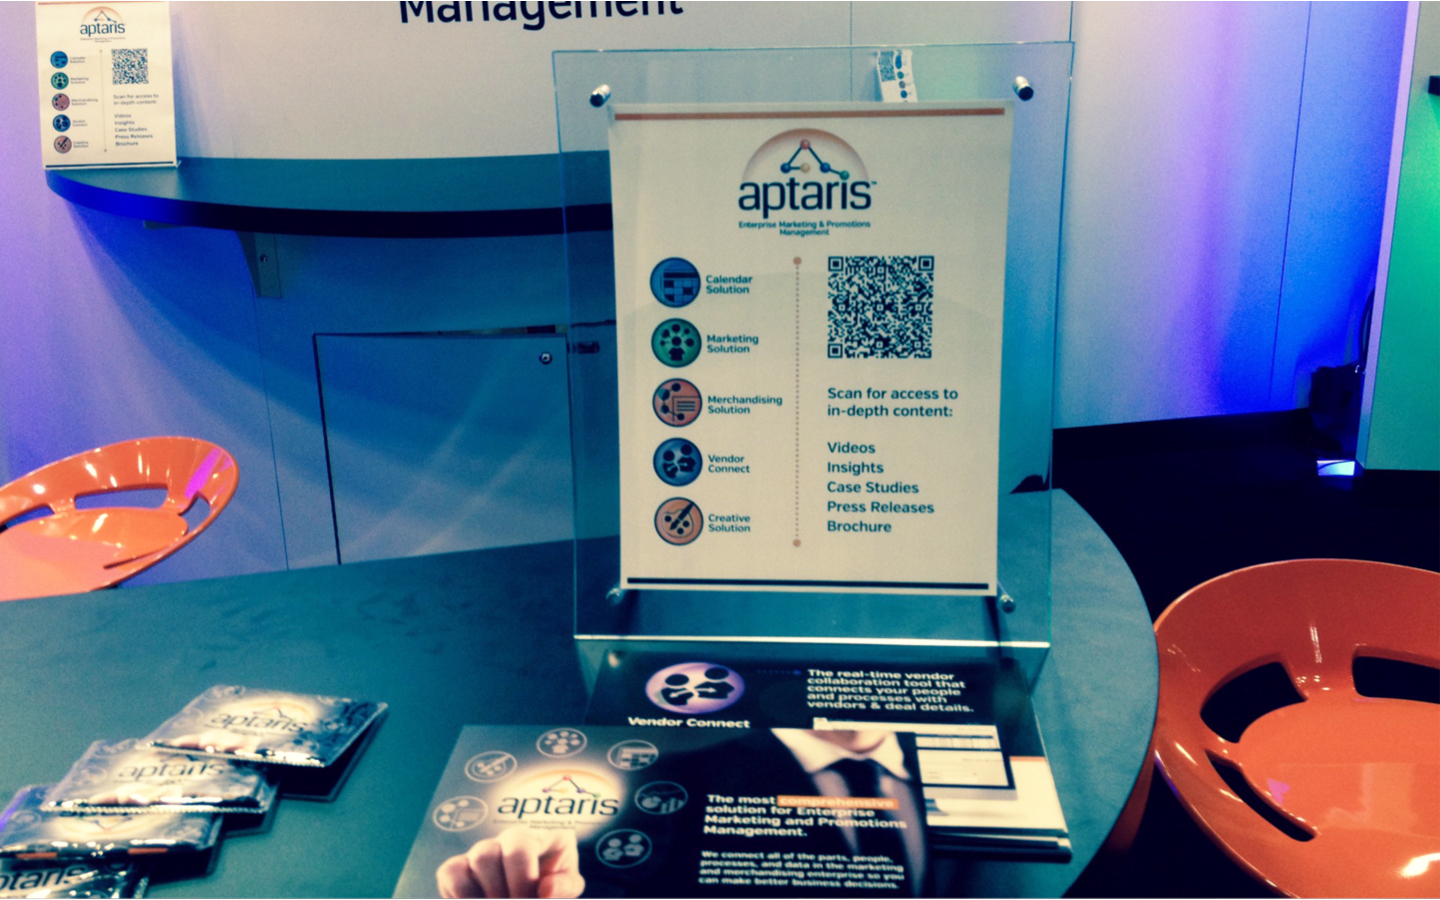 <p>Tradeshow sales strategy, collateral materials, technology for content customer engagement</p>